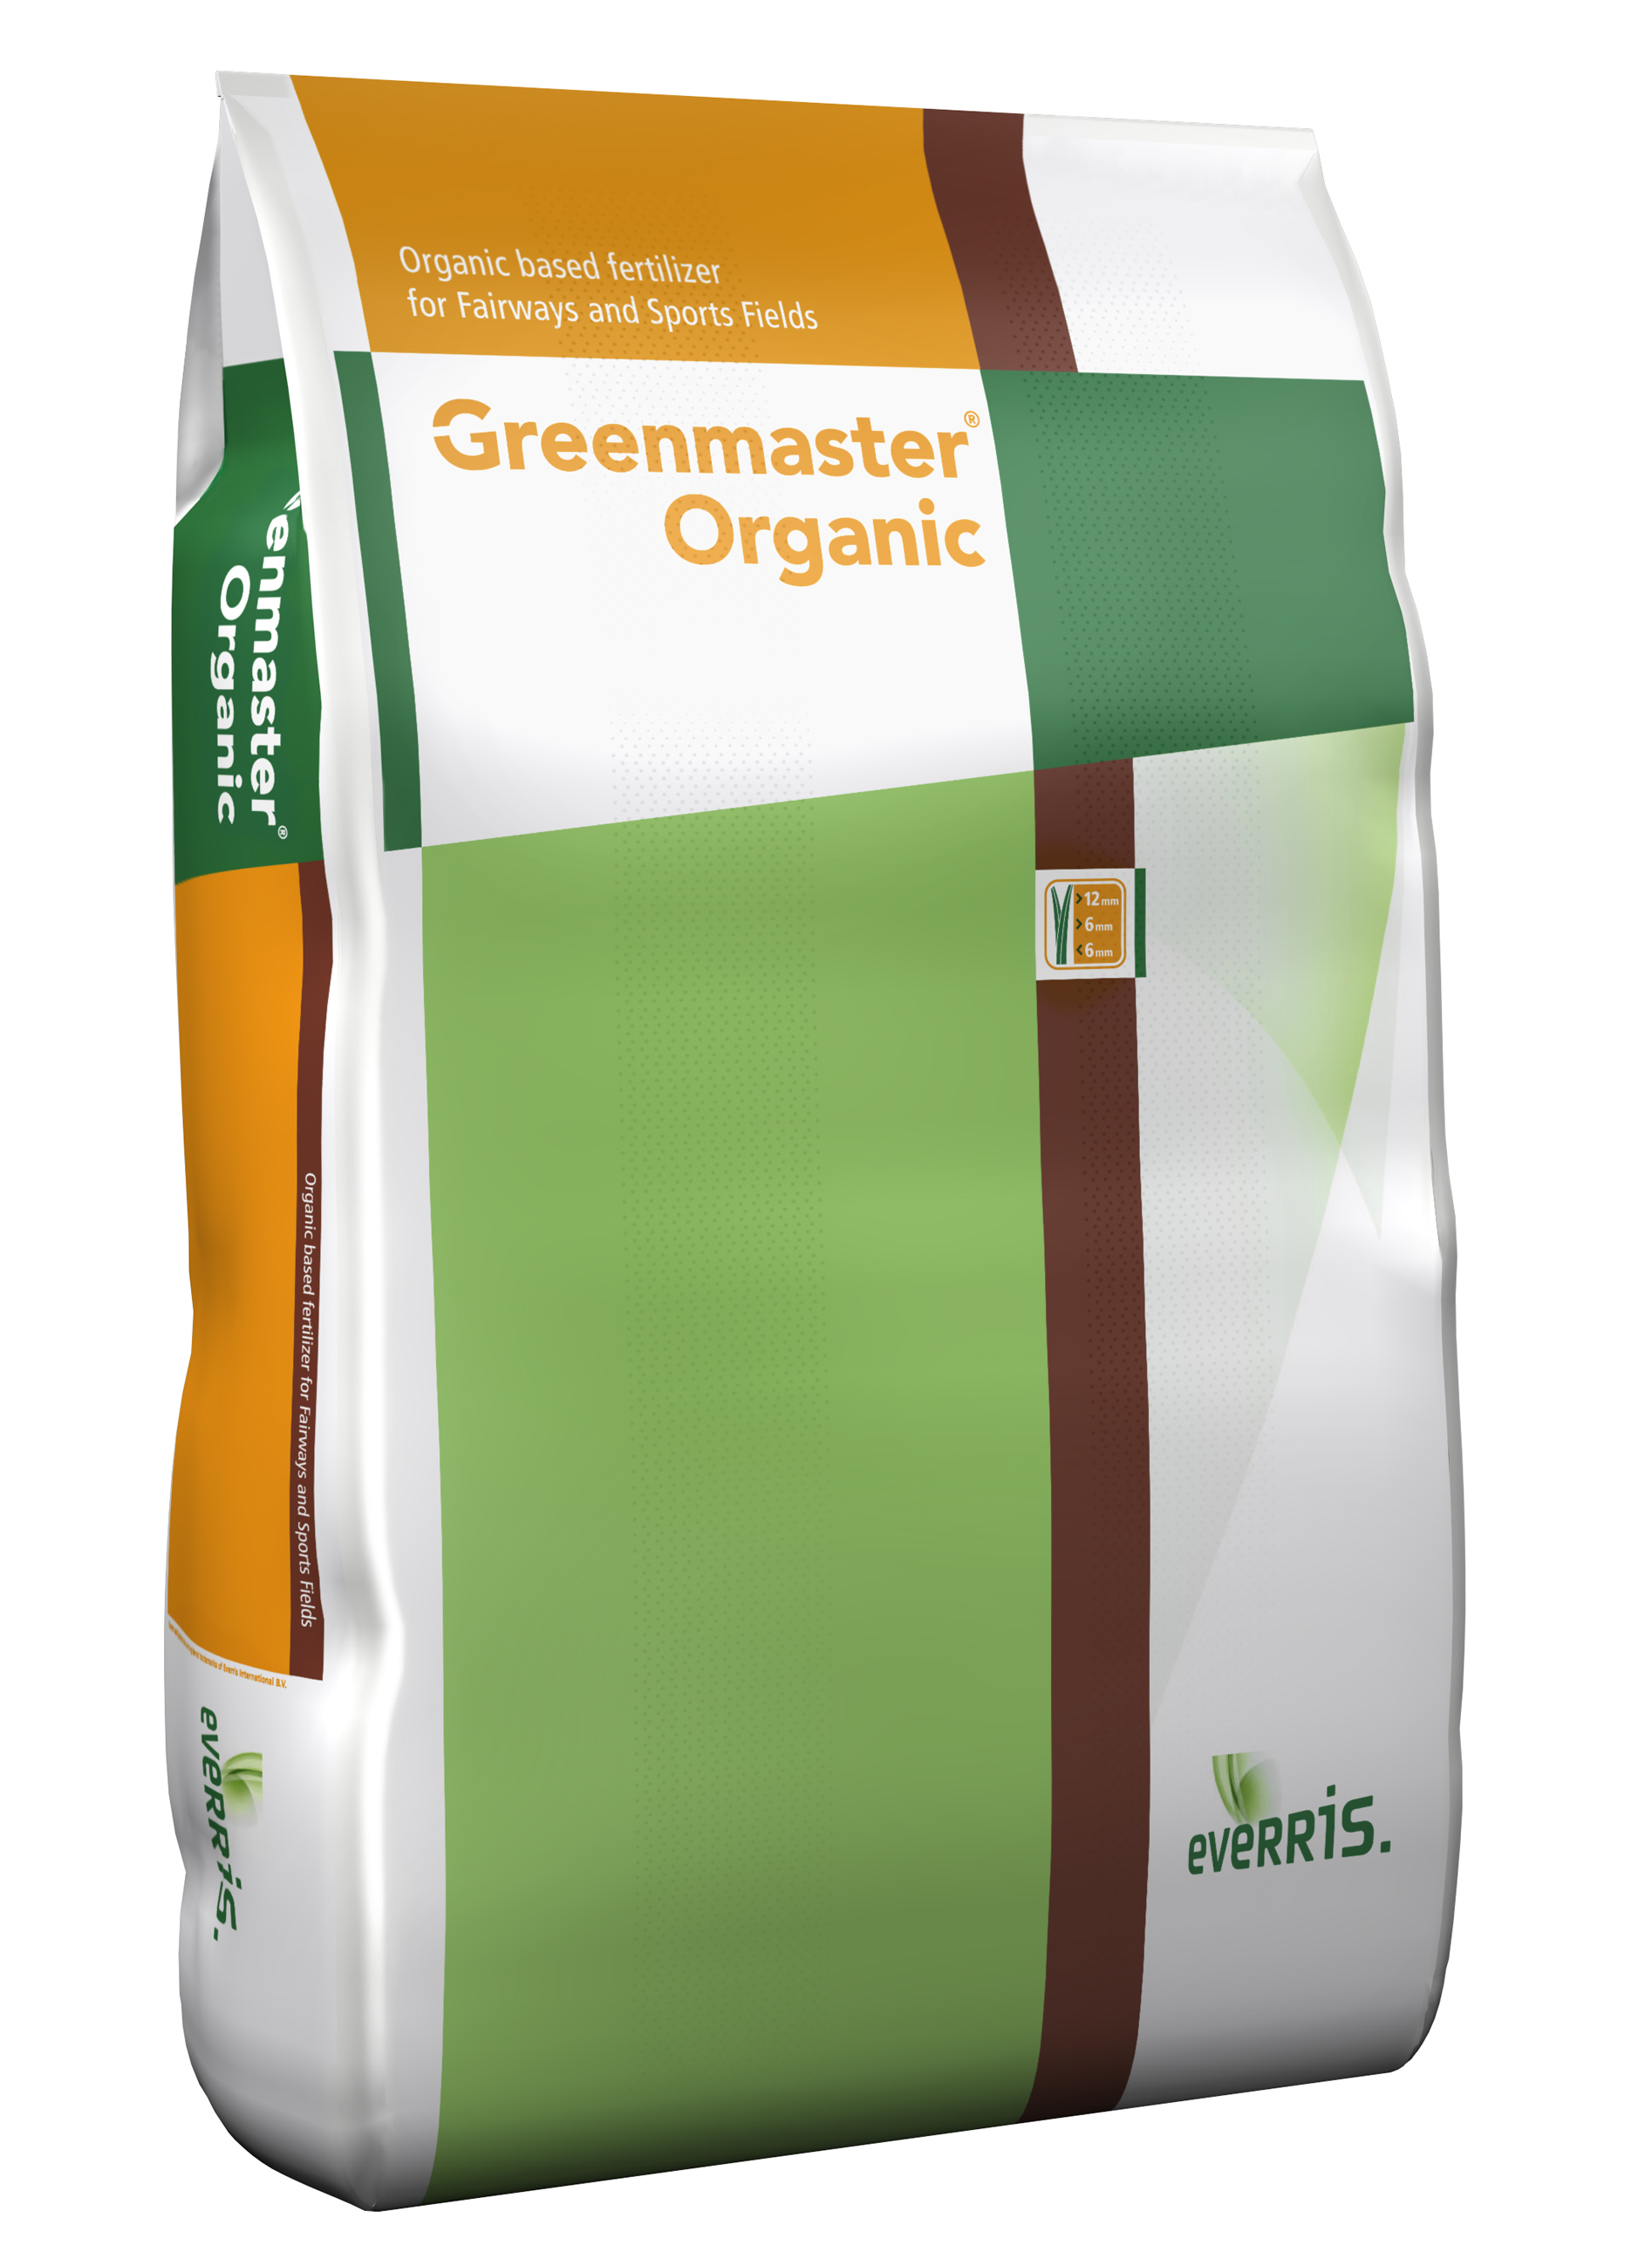 Greenmaster Organic High N